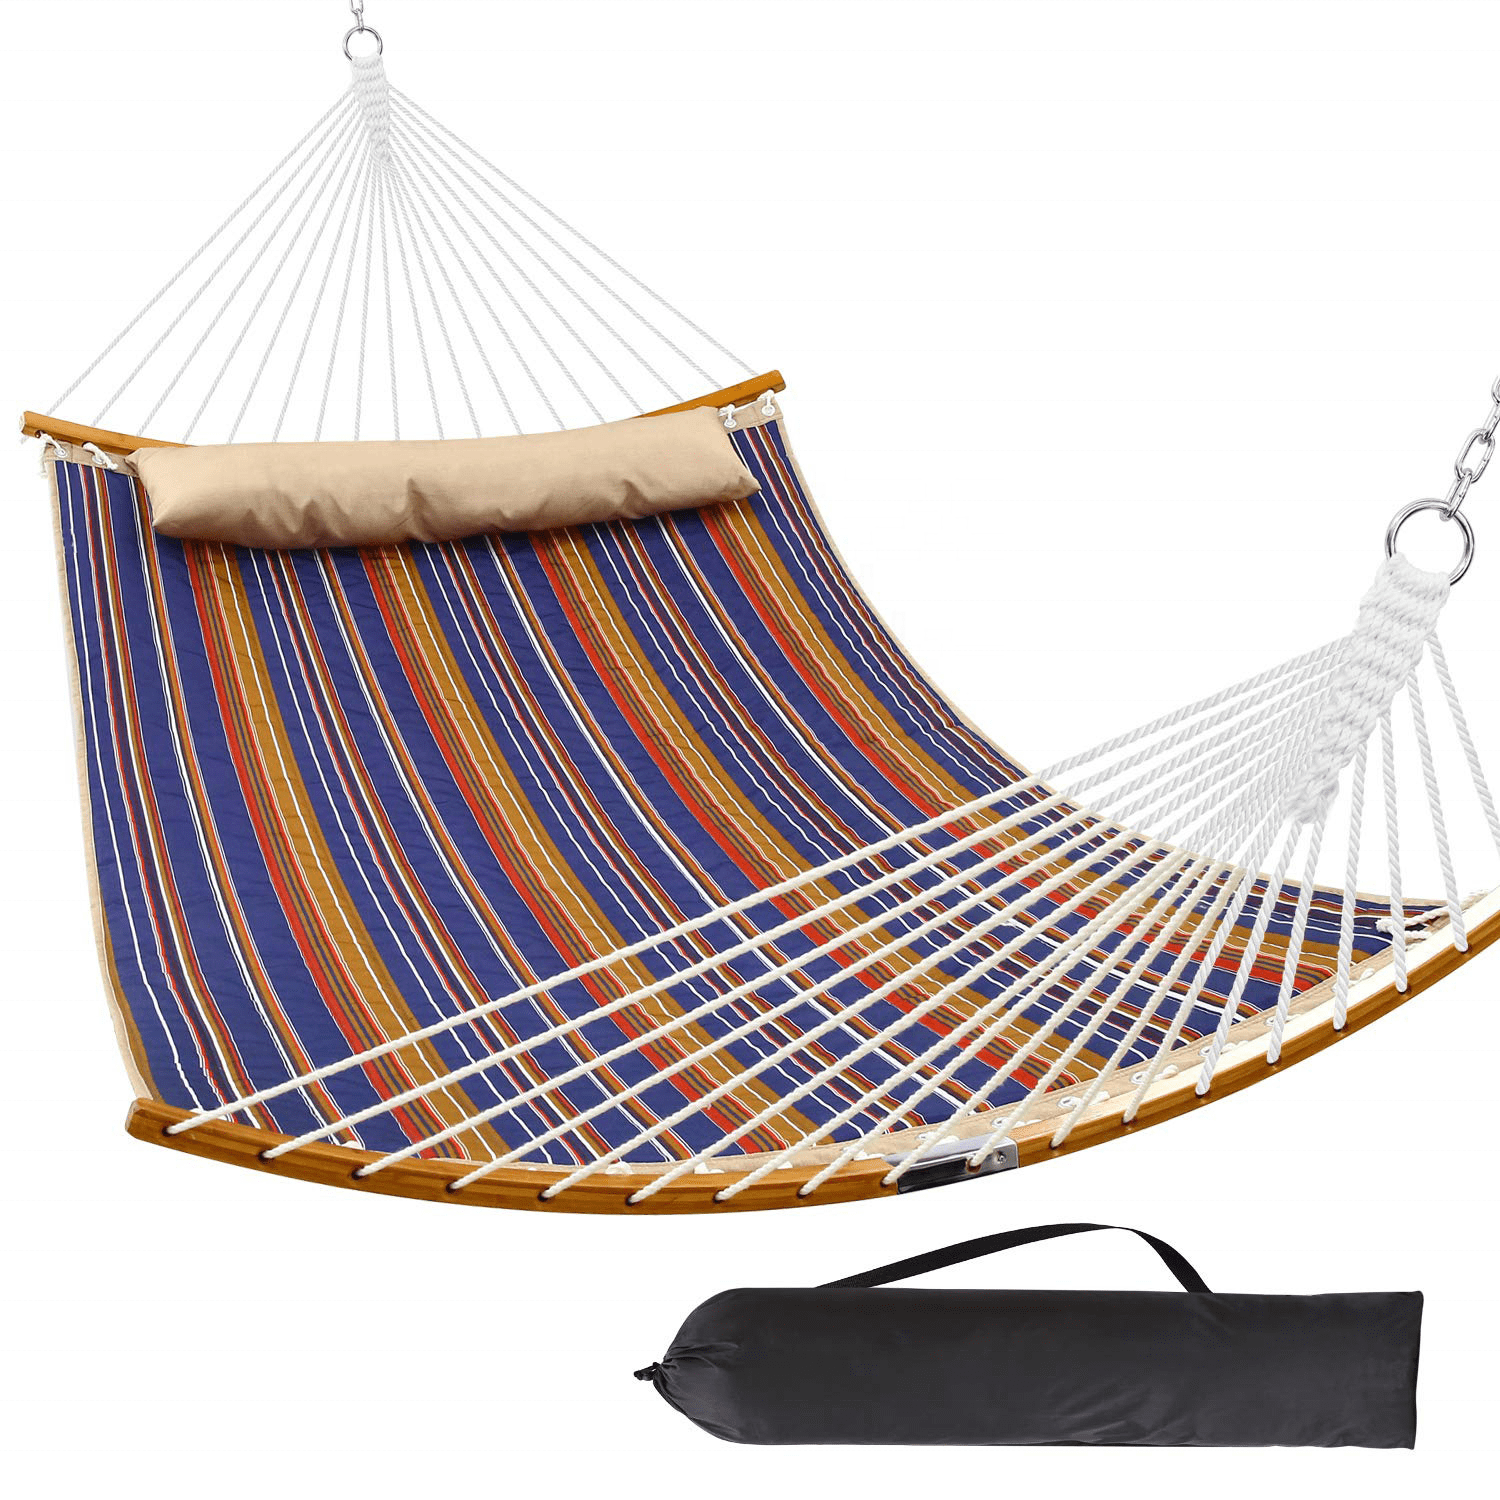 Deluxe Curved Bamboo Quilted Hammock With Pillow  Folding Hammock swing